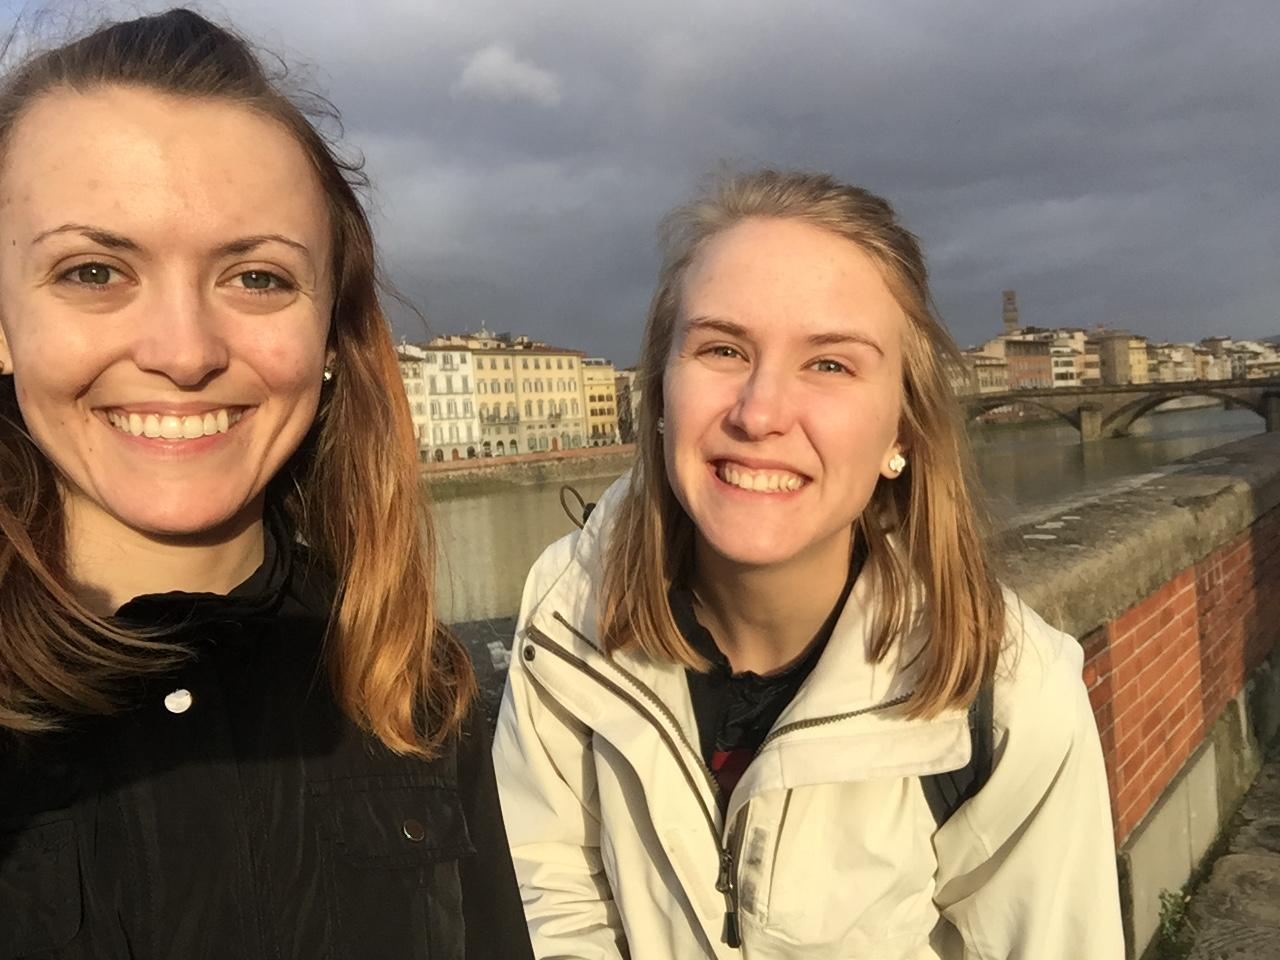 CAPAStudyAbroad_Florence_Spring2016_From_Samantha_Giordano1.jpg